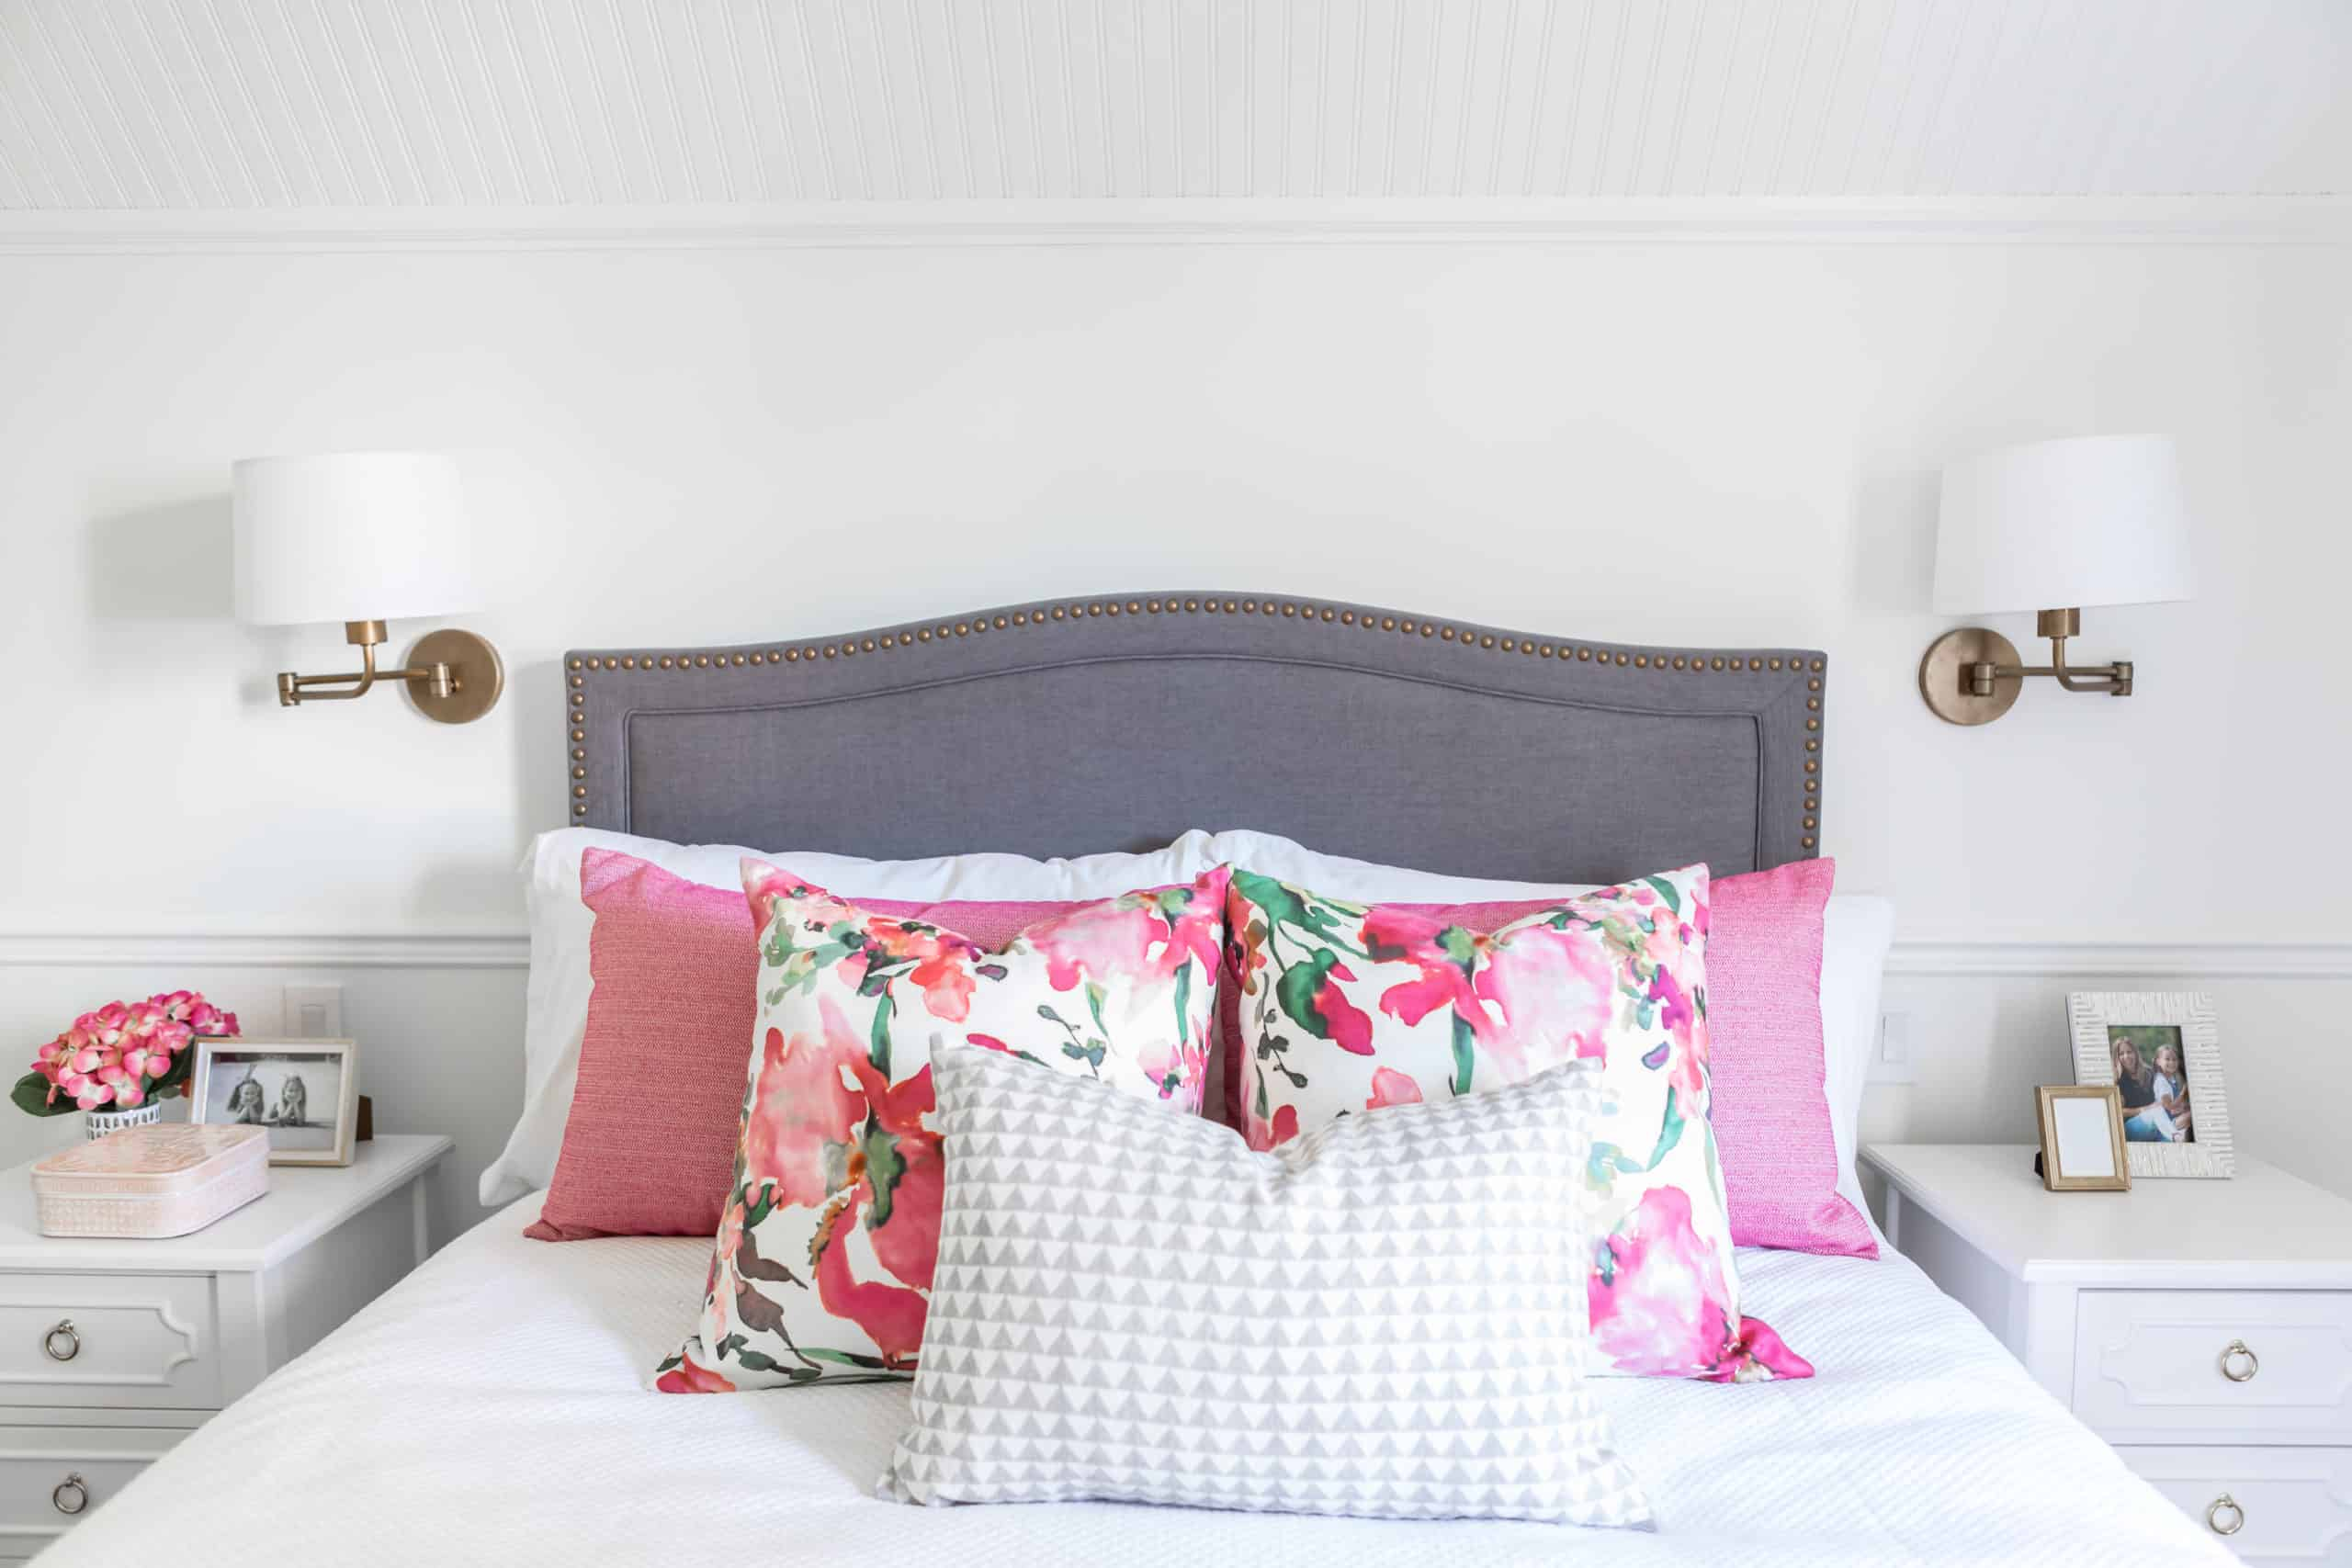 Colorful pillows on a white and purple bed